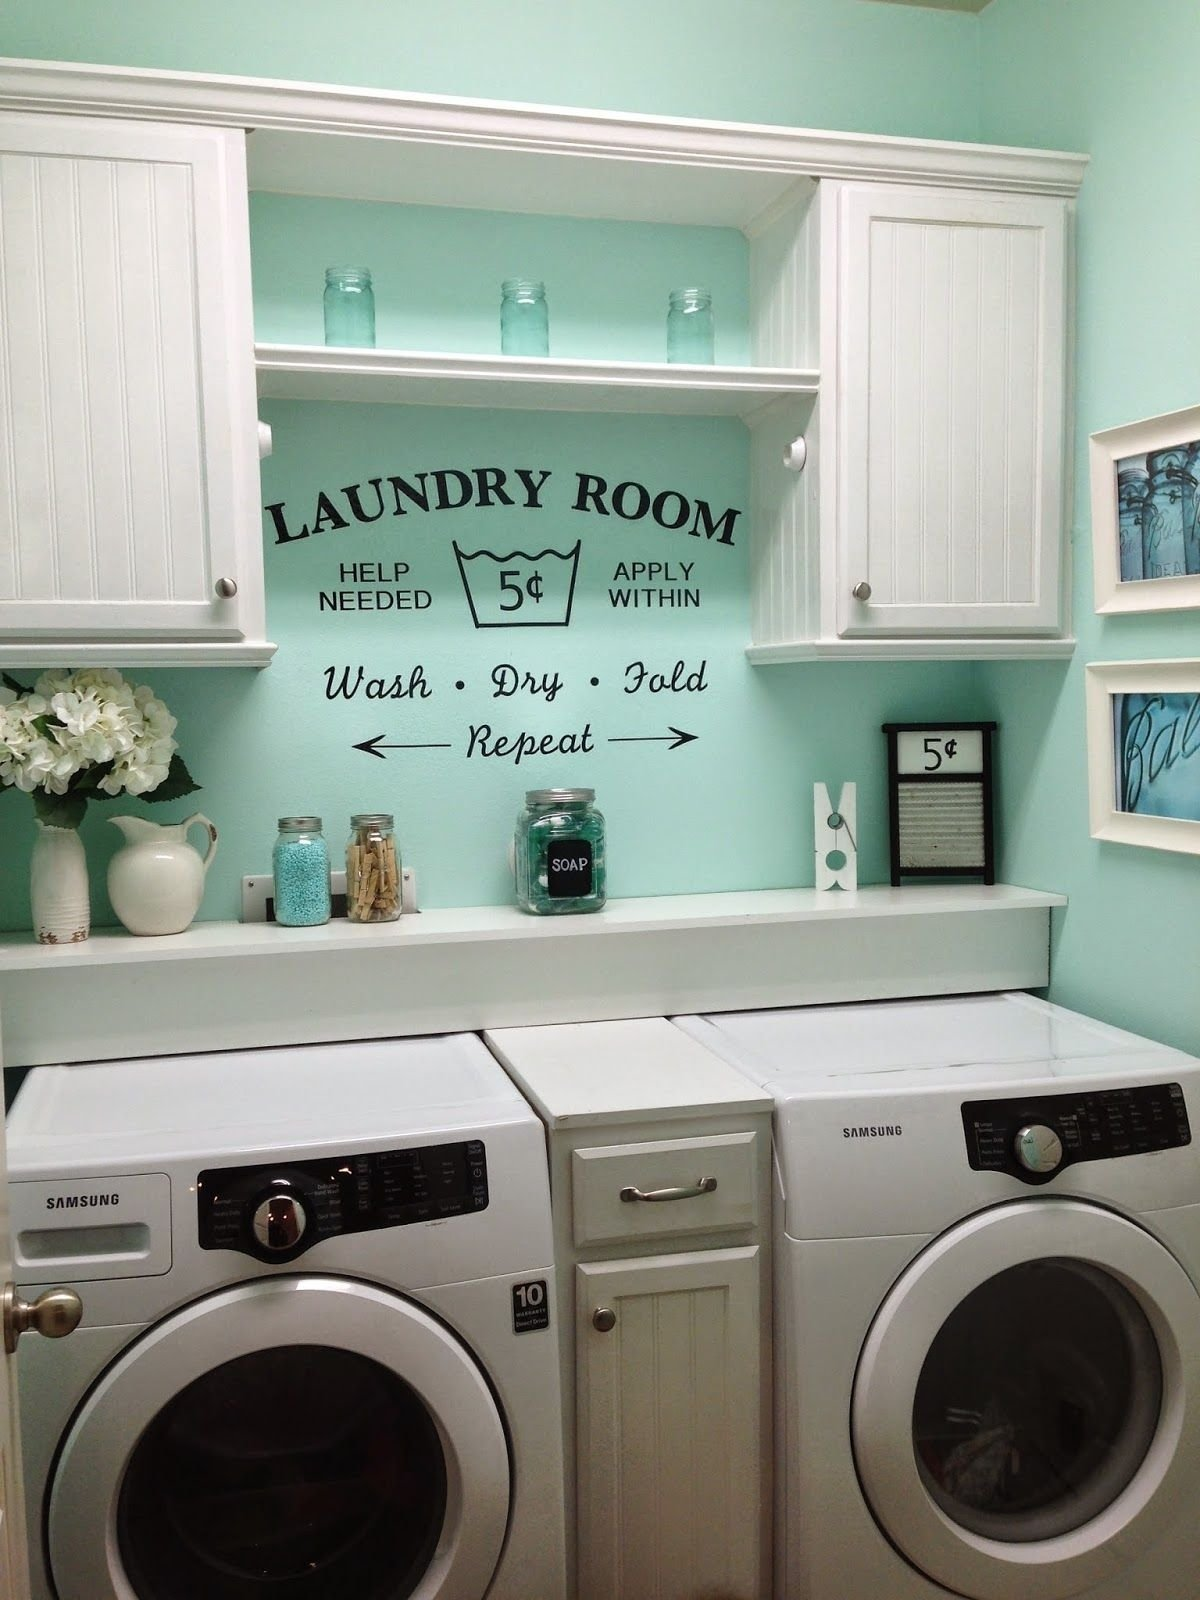 10 Amazing Ideas For Small Laundry Room rustic shabby chic laundry room vintage vinyl decal small laundry 4 2020